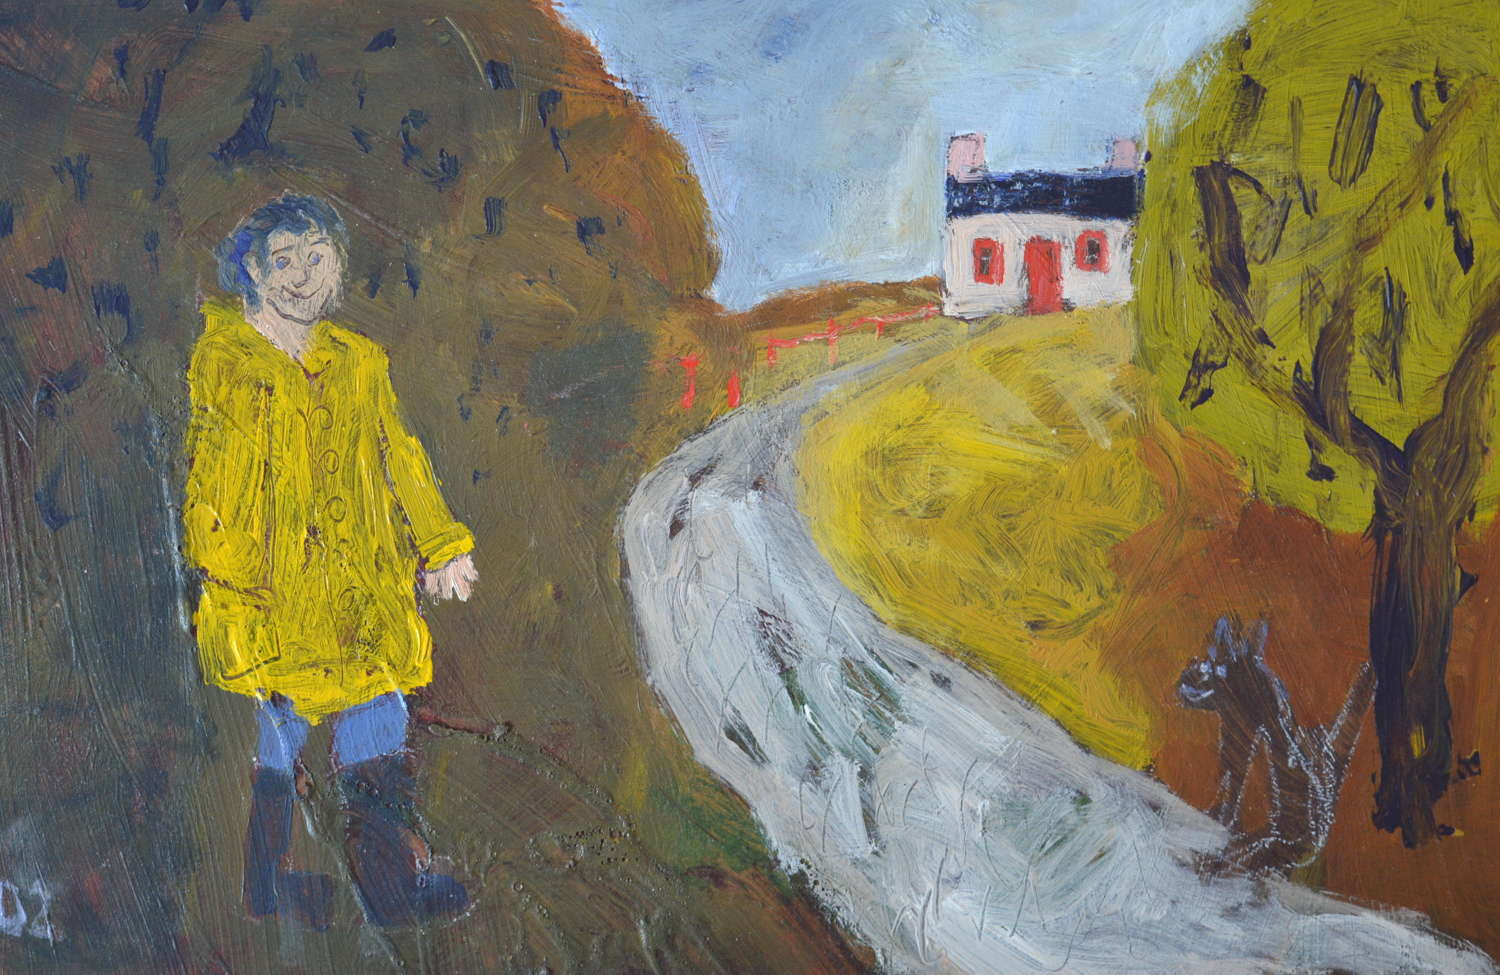 DAVID PEARCE FIGURE IN LANDSCAPE